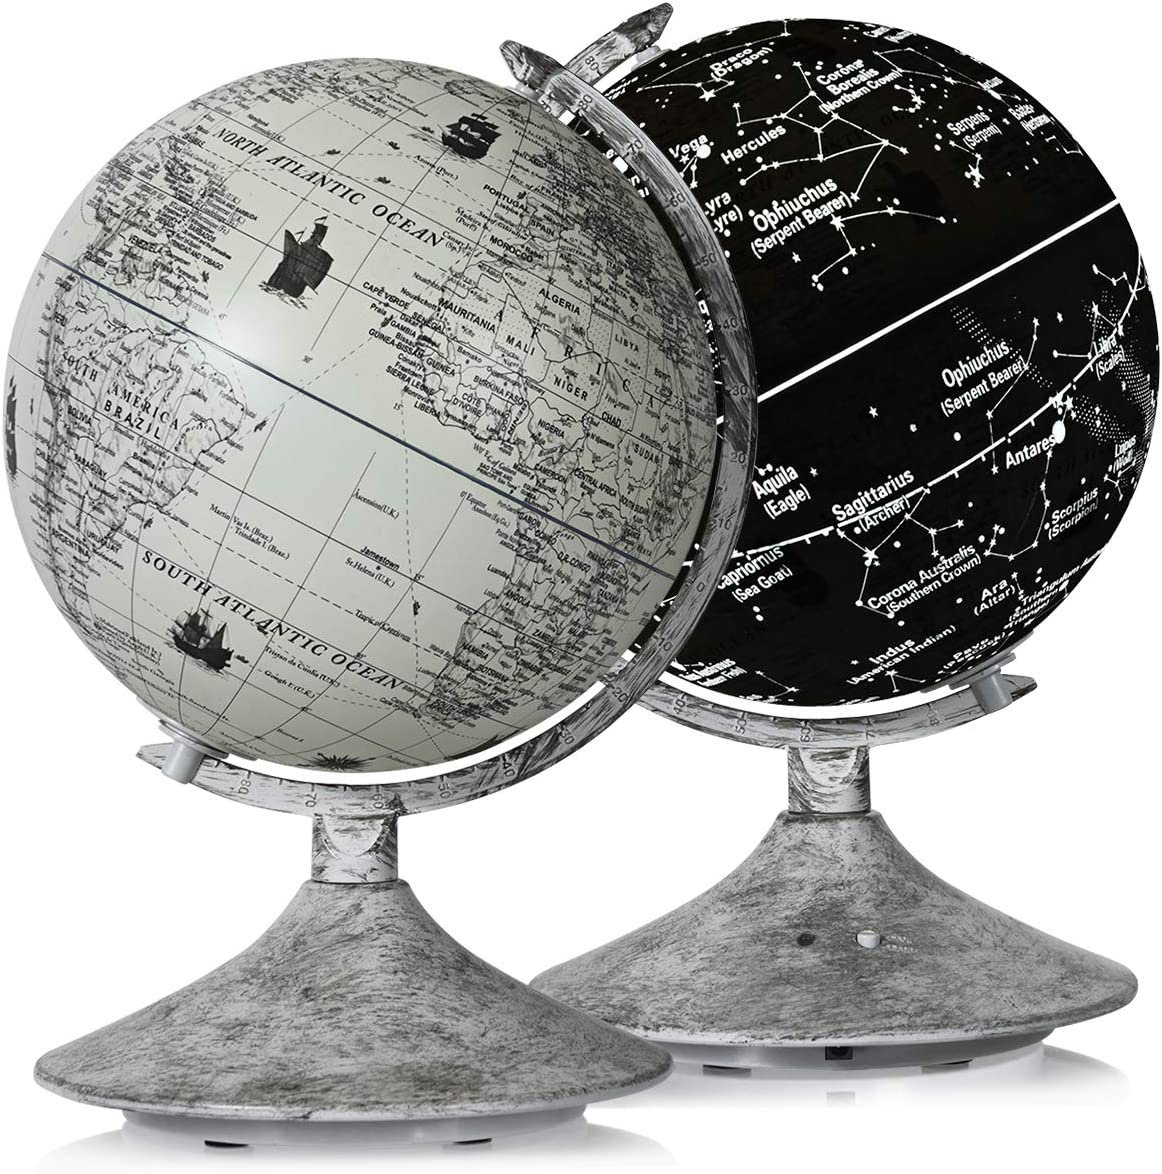 Goplus 9'' Illuminated World Globe, 3 in 1 Built-in LED Desktop Globe with World Map and Constellation View, Interactive Educational Earth Globe for Kids Adults